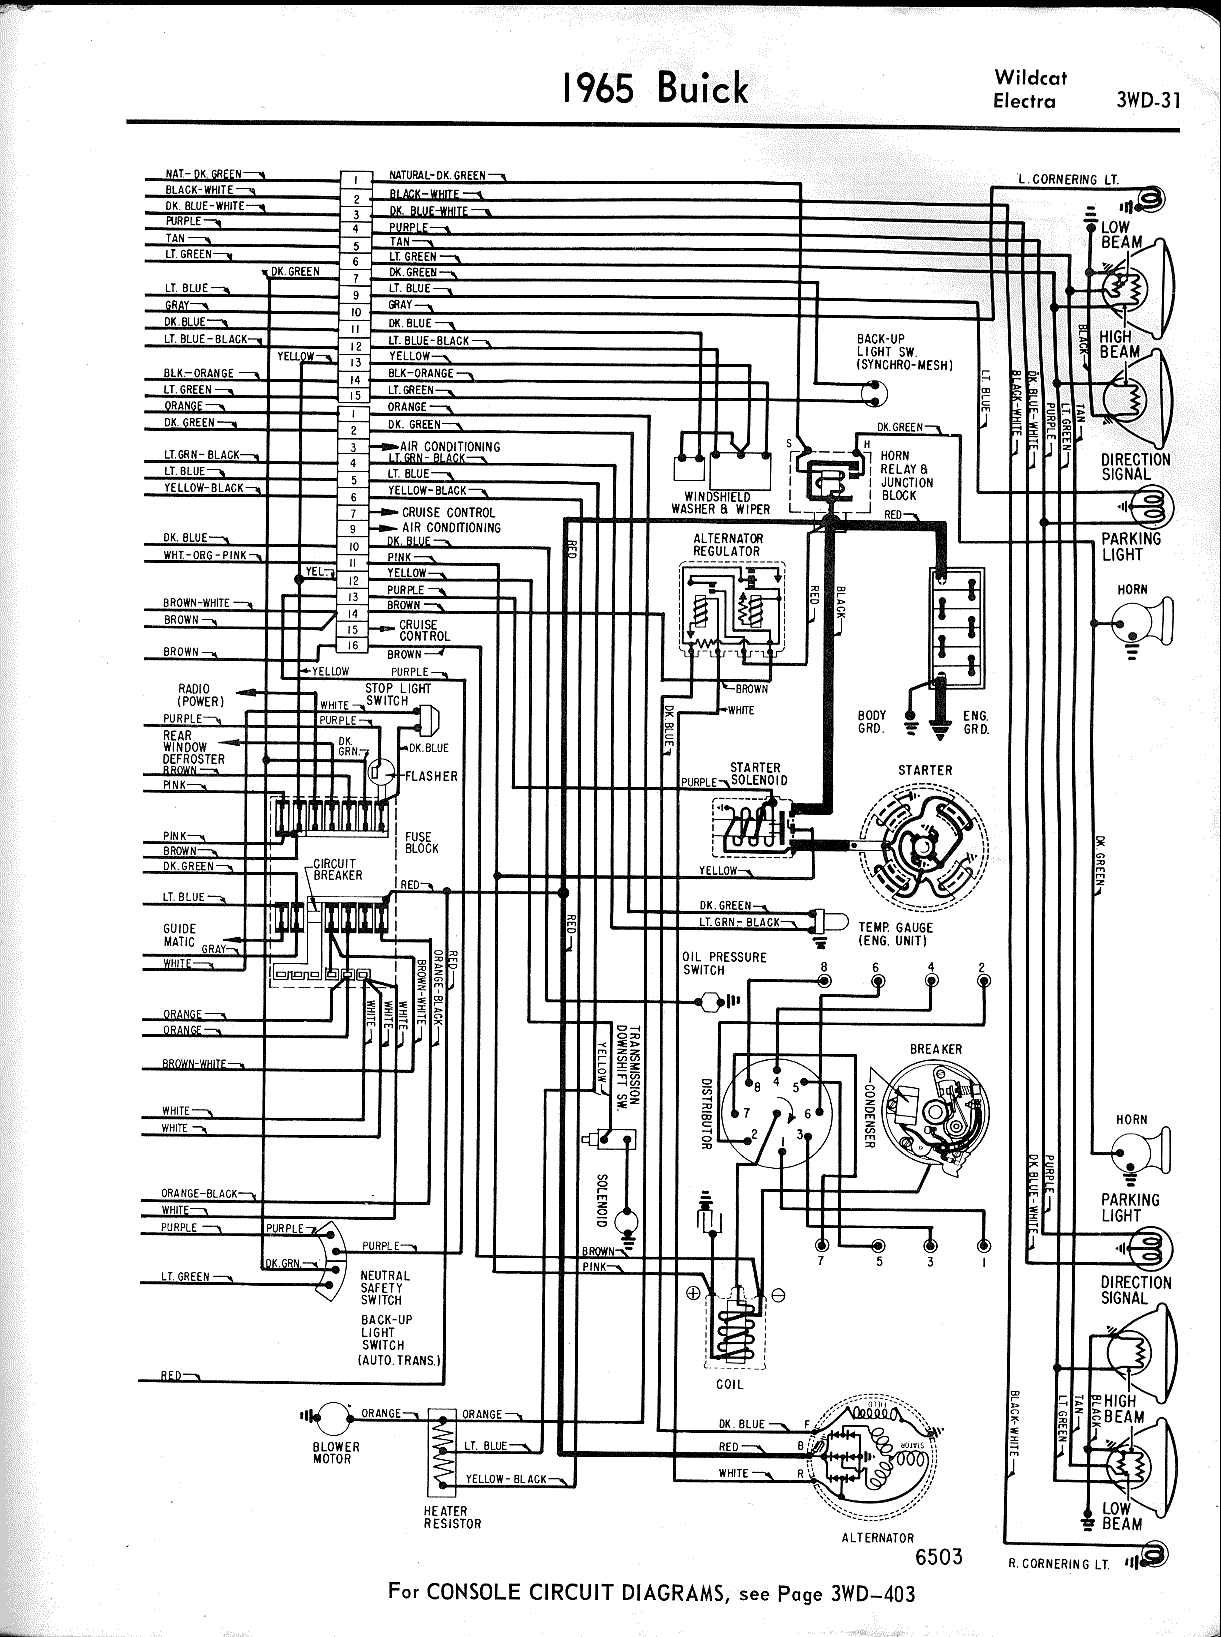 1967 buick wiring diagram online wiring diagram Buick Headlight Wiring Diagram 1965 buick wiring diagram wiring schematic diagram 45 beamsys co 1967 buick wiring diagram